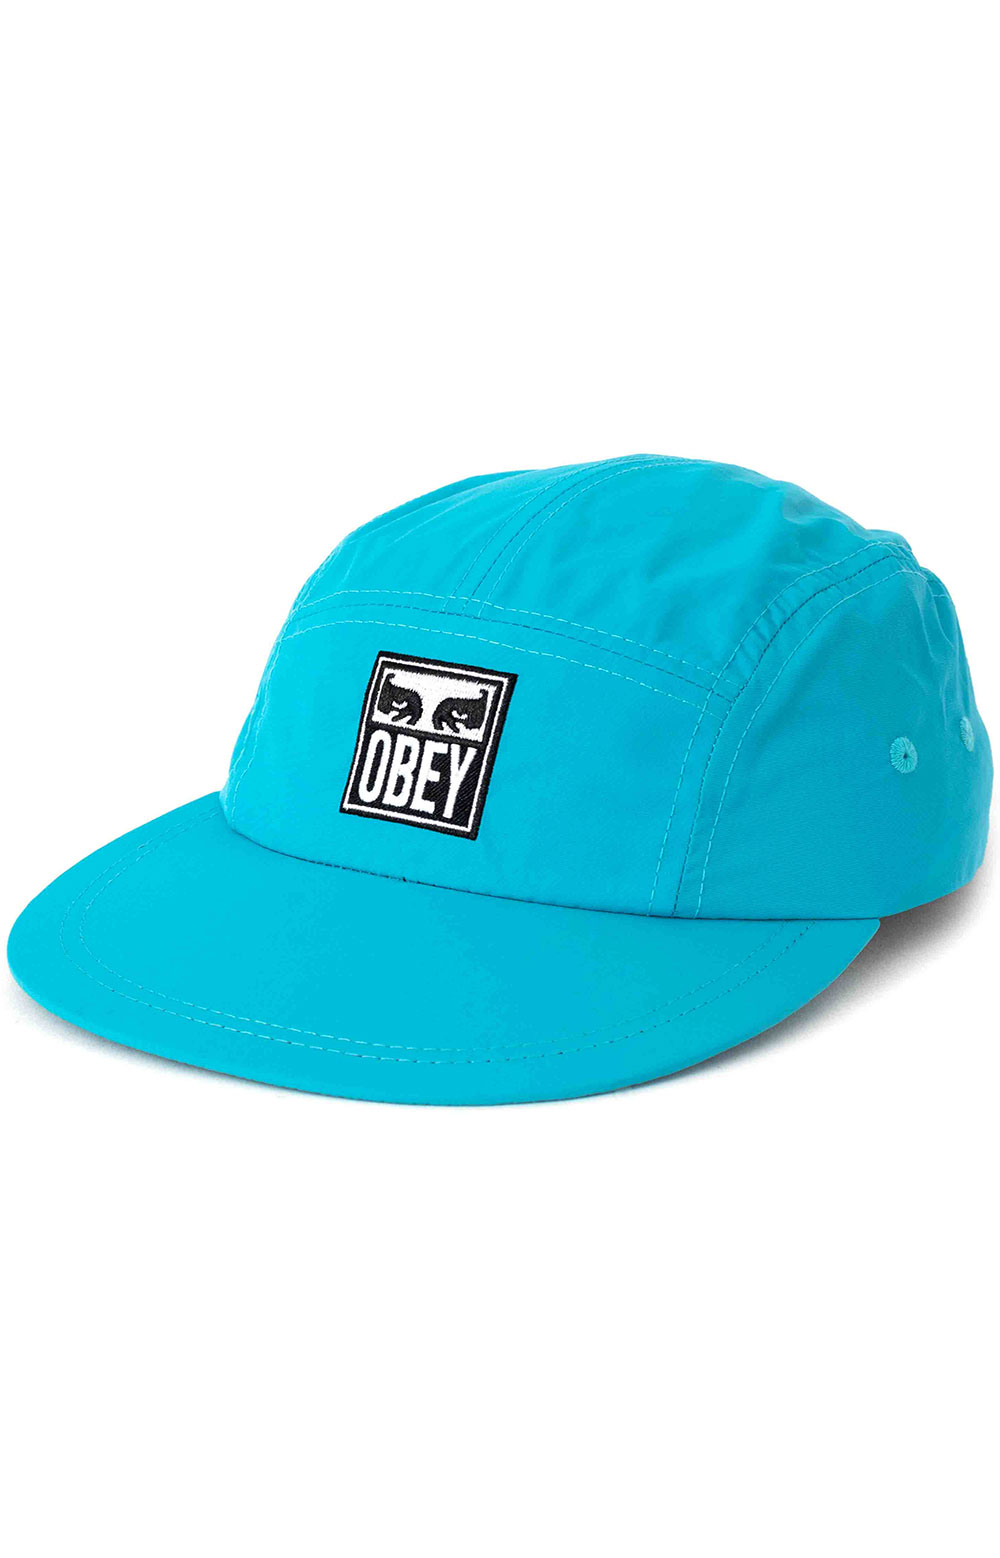 Vanish 5 Panel Hat - Teal